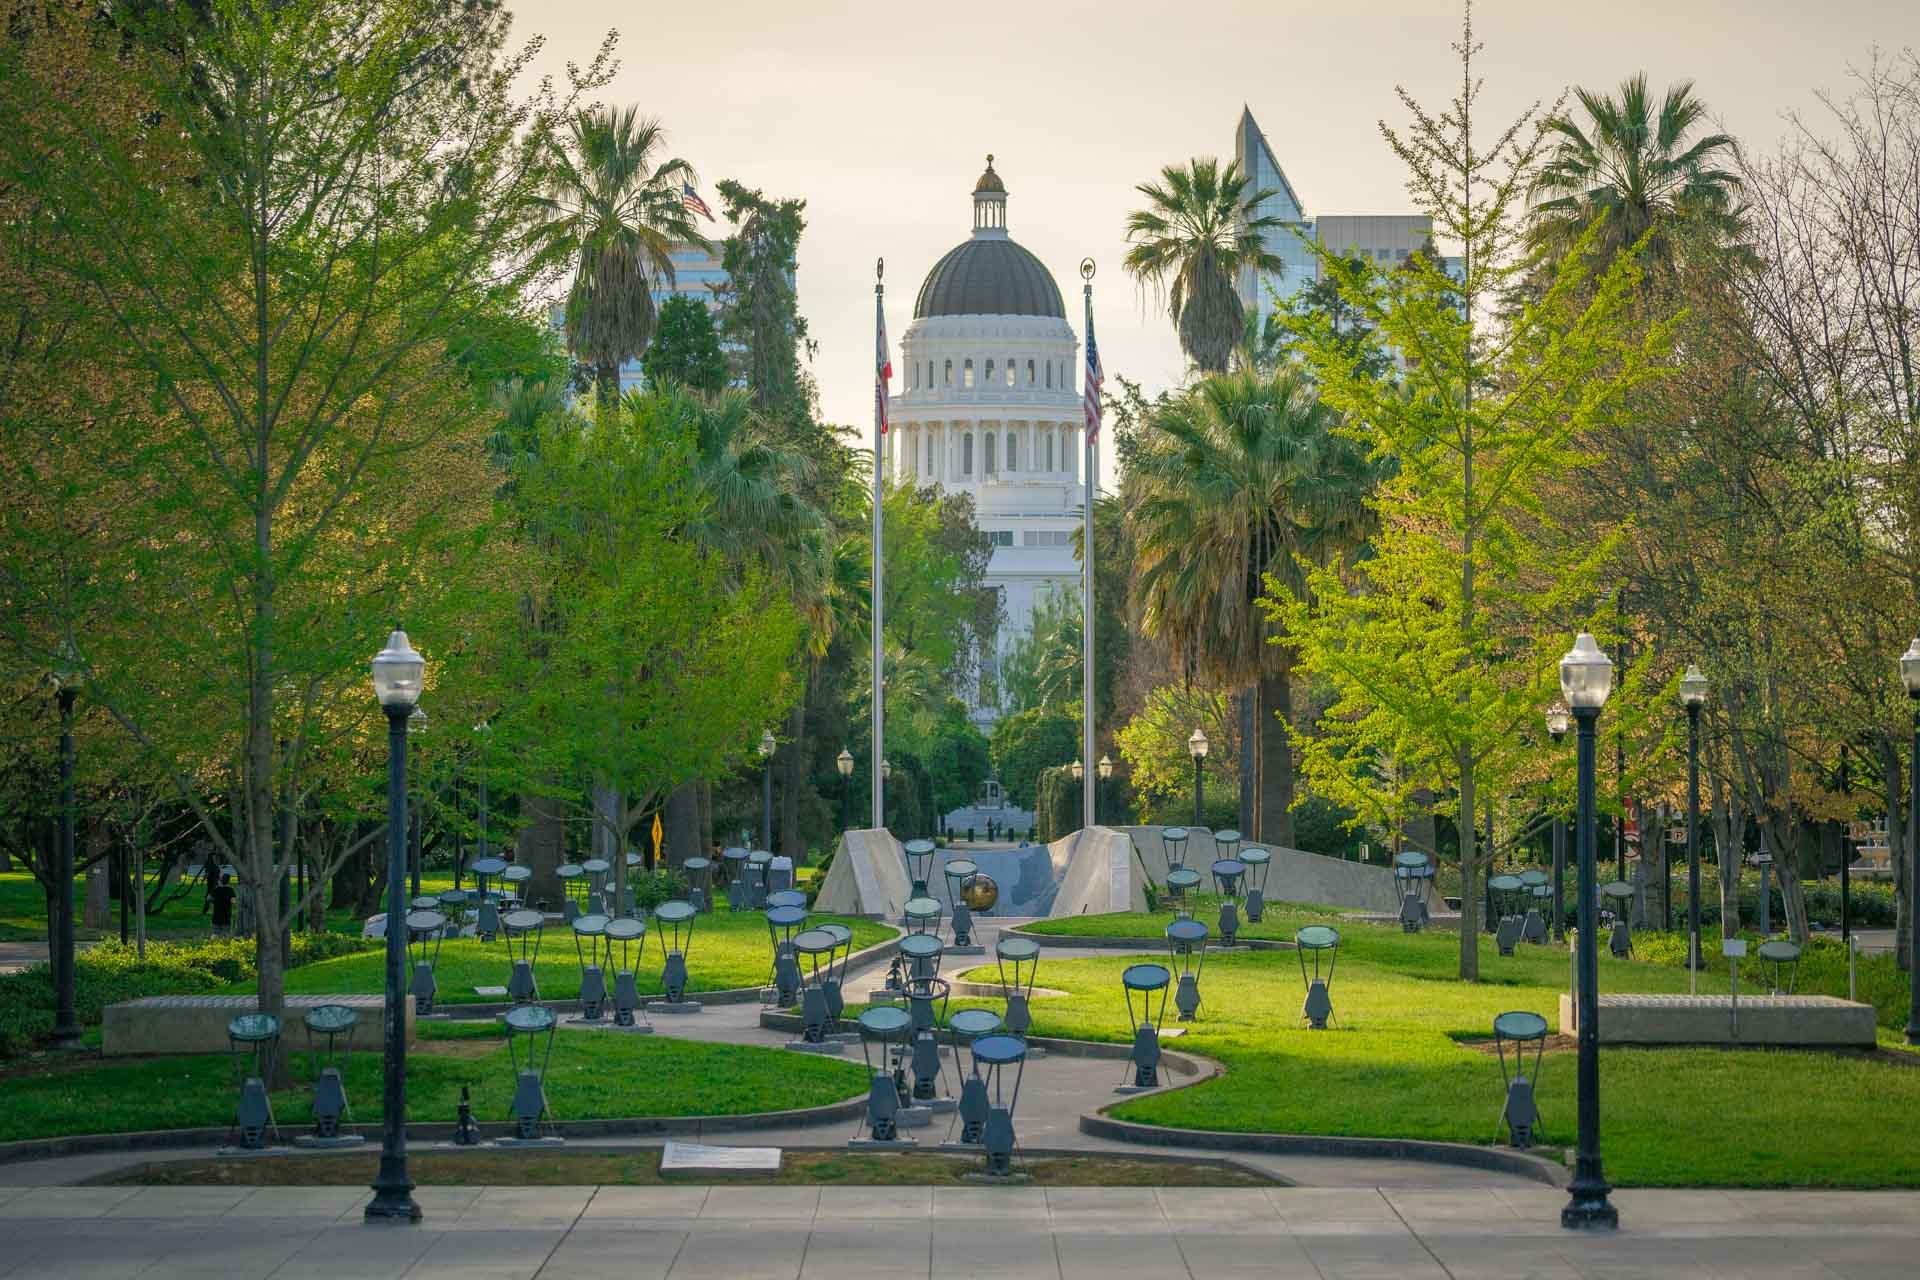 Capitol Park in Sacramento California